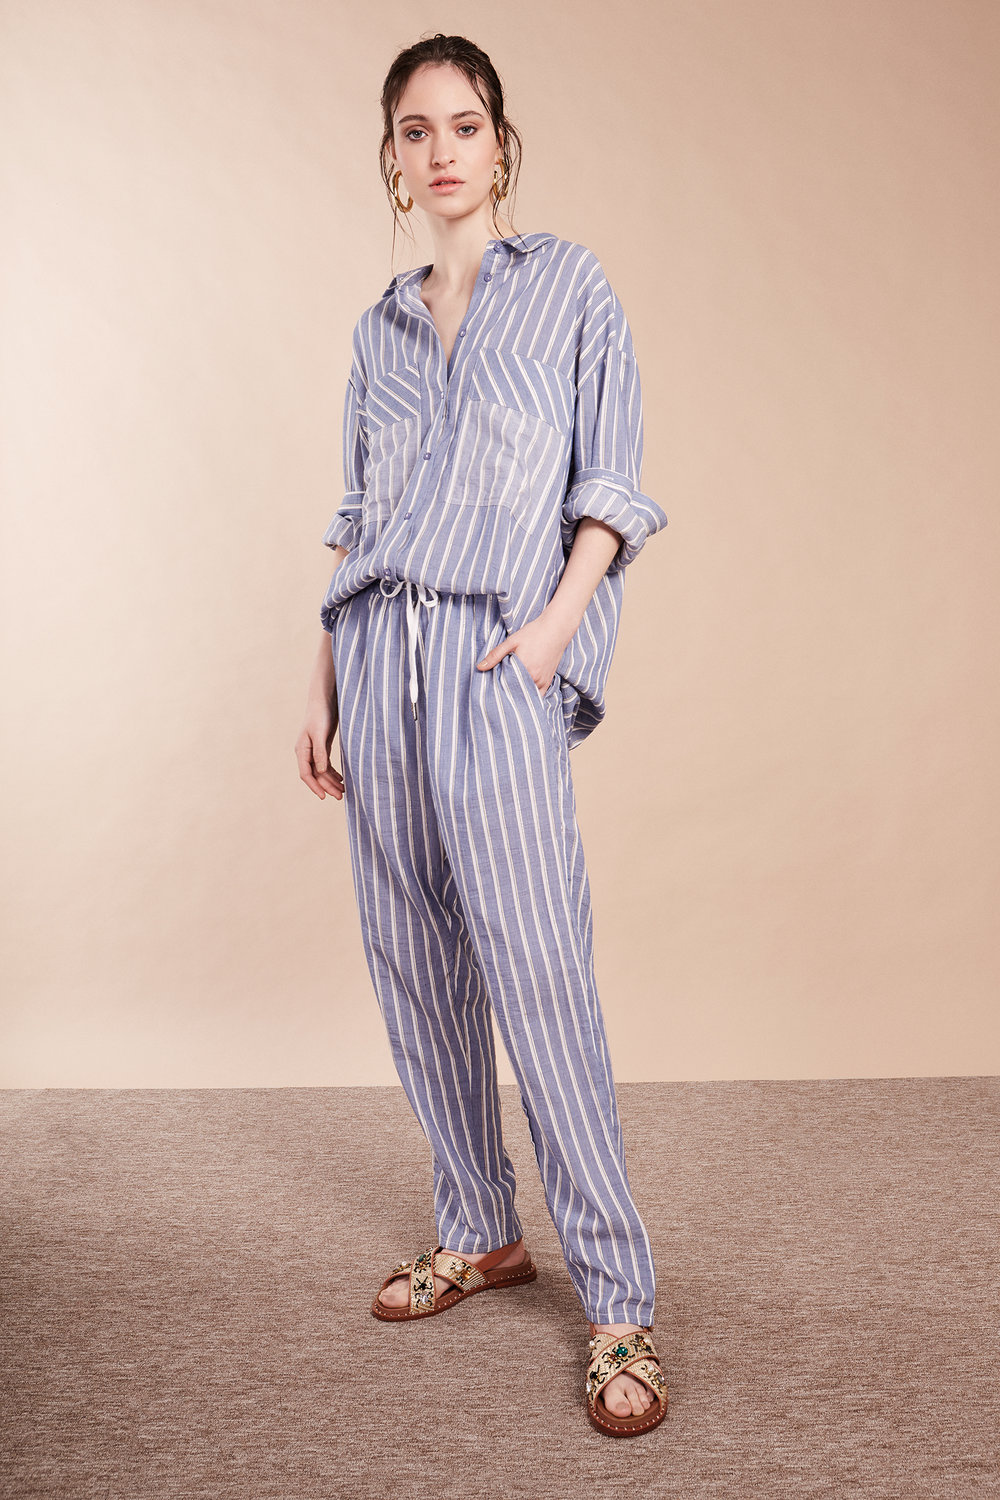 7 - Laura Lombardi earrings (as before); Munthe striped shirt, £179, Grace and Mabel; Munthe striped trousers, £139, Grace and Mabel; Ash sandals, £185, Grace and Mabel